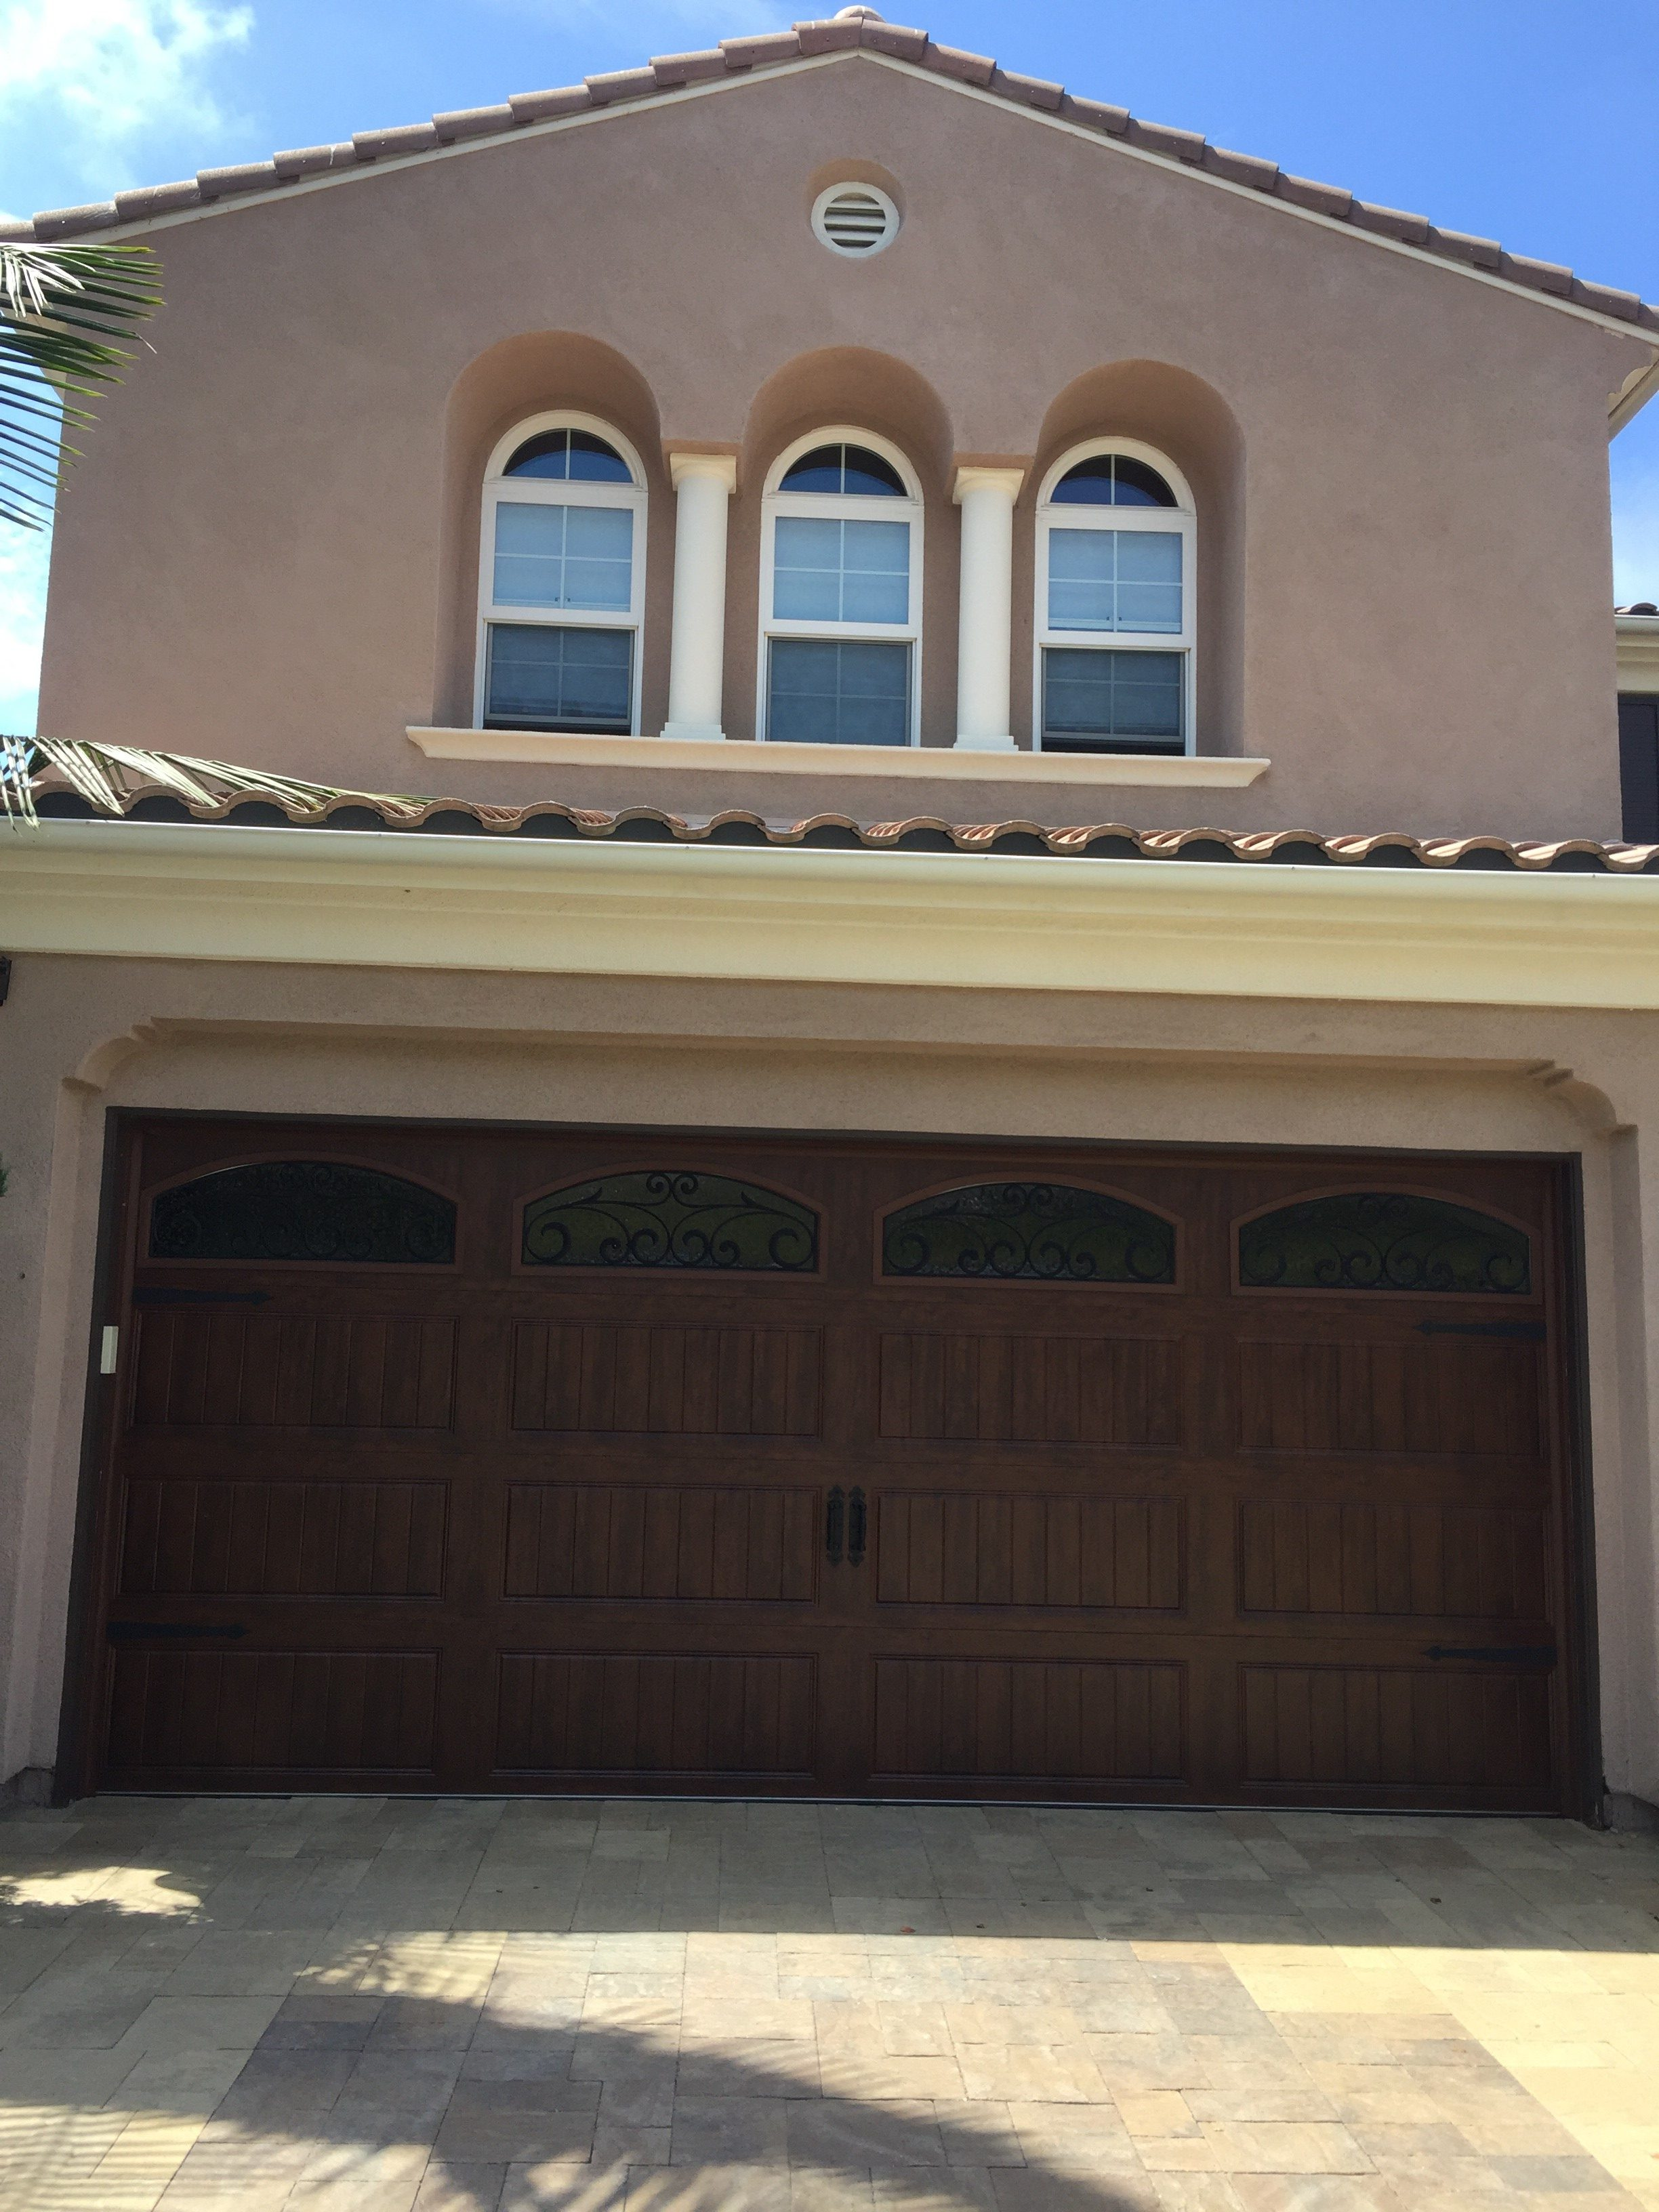 Home improvement garage door projects worth the investment.